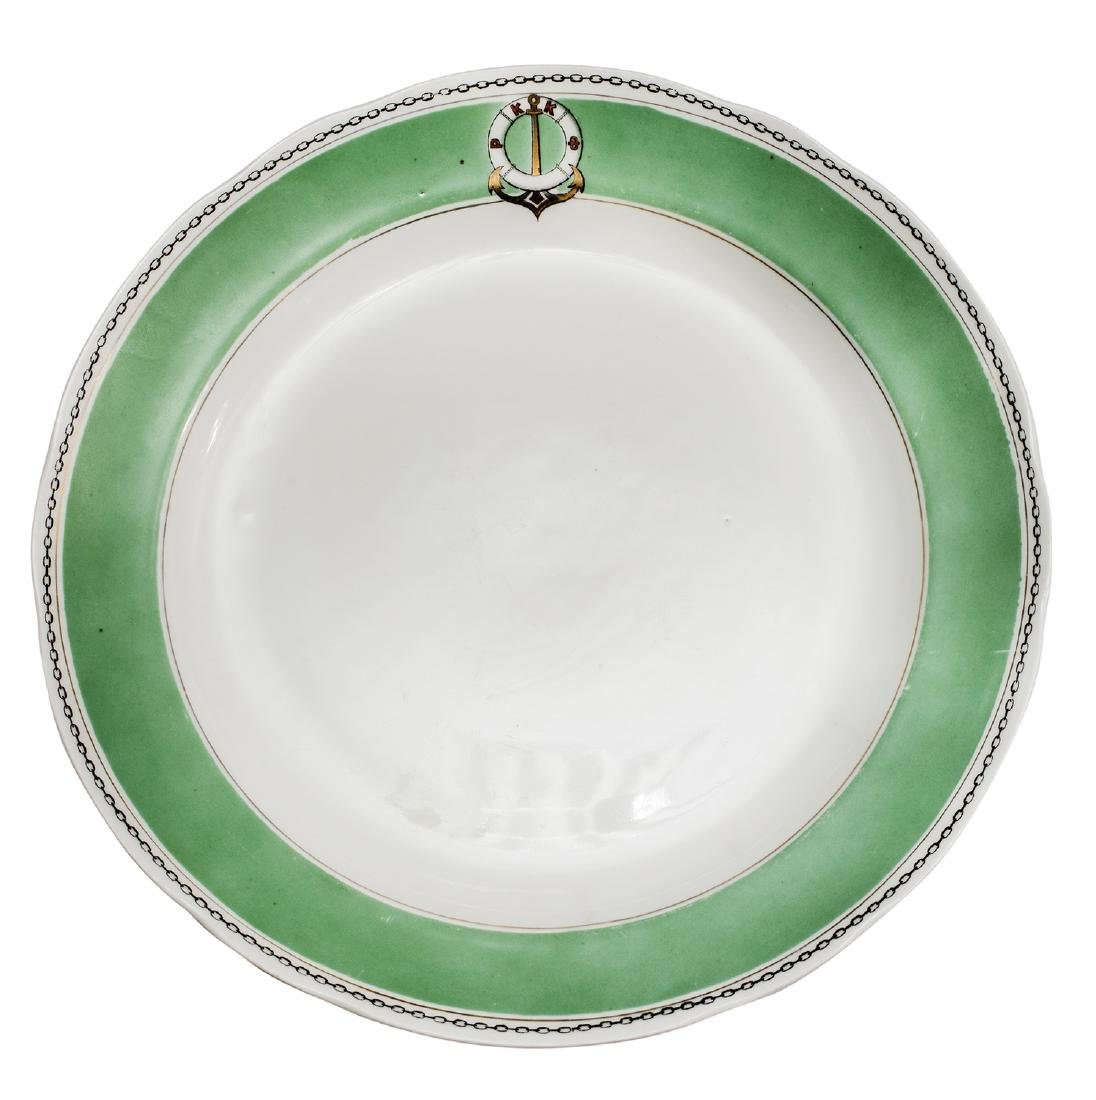 RARE SERVING DISH FROM THE MILITARY MARITIME FLEET OF